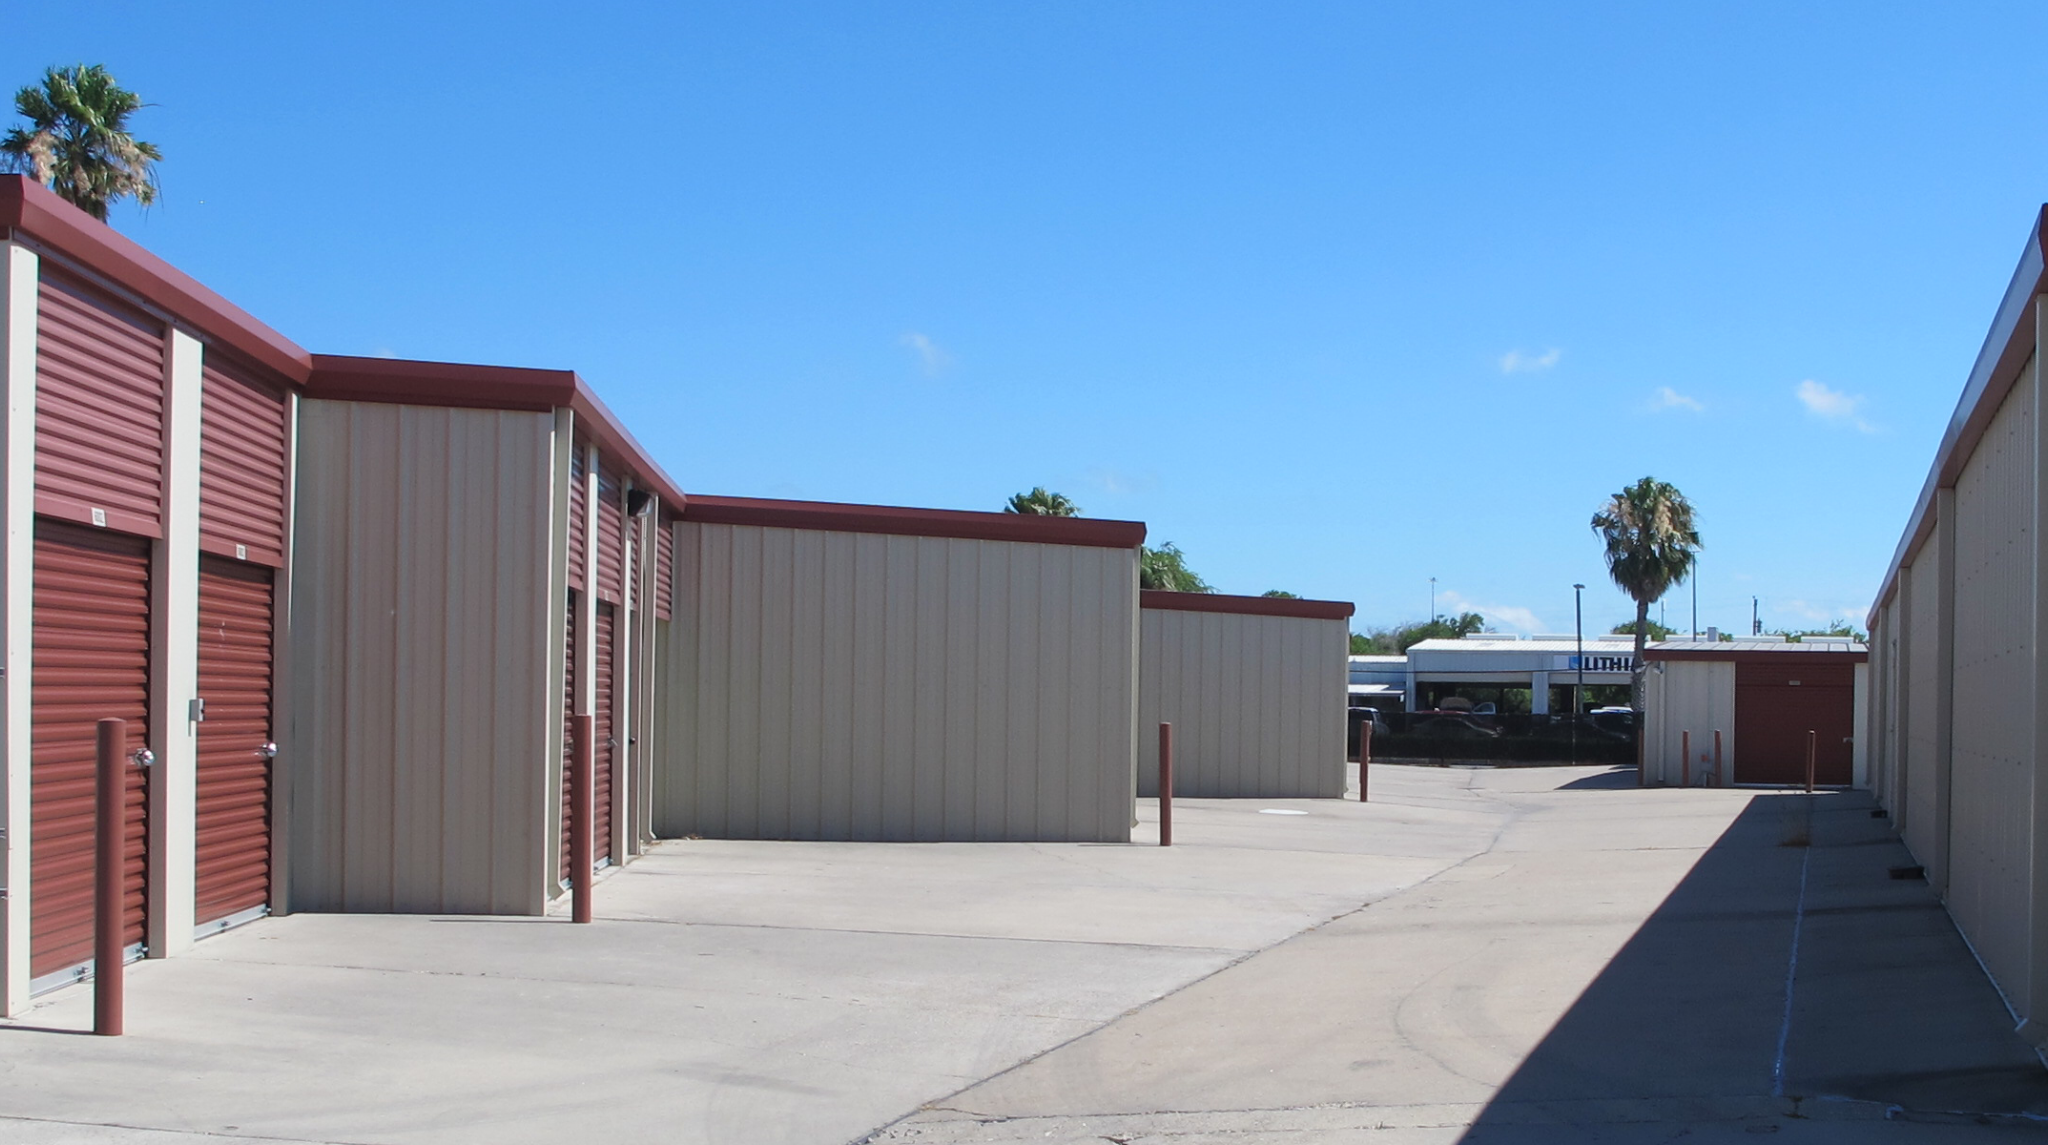 The Storage Company at Everhart image 8